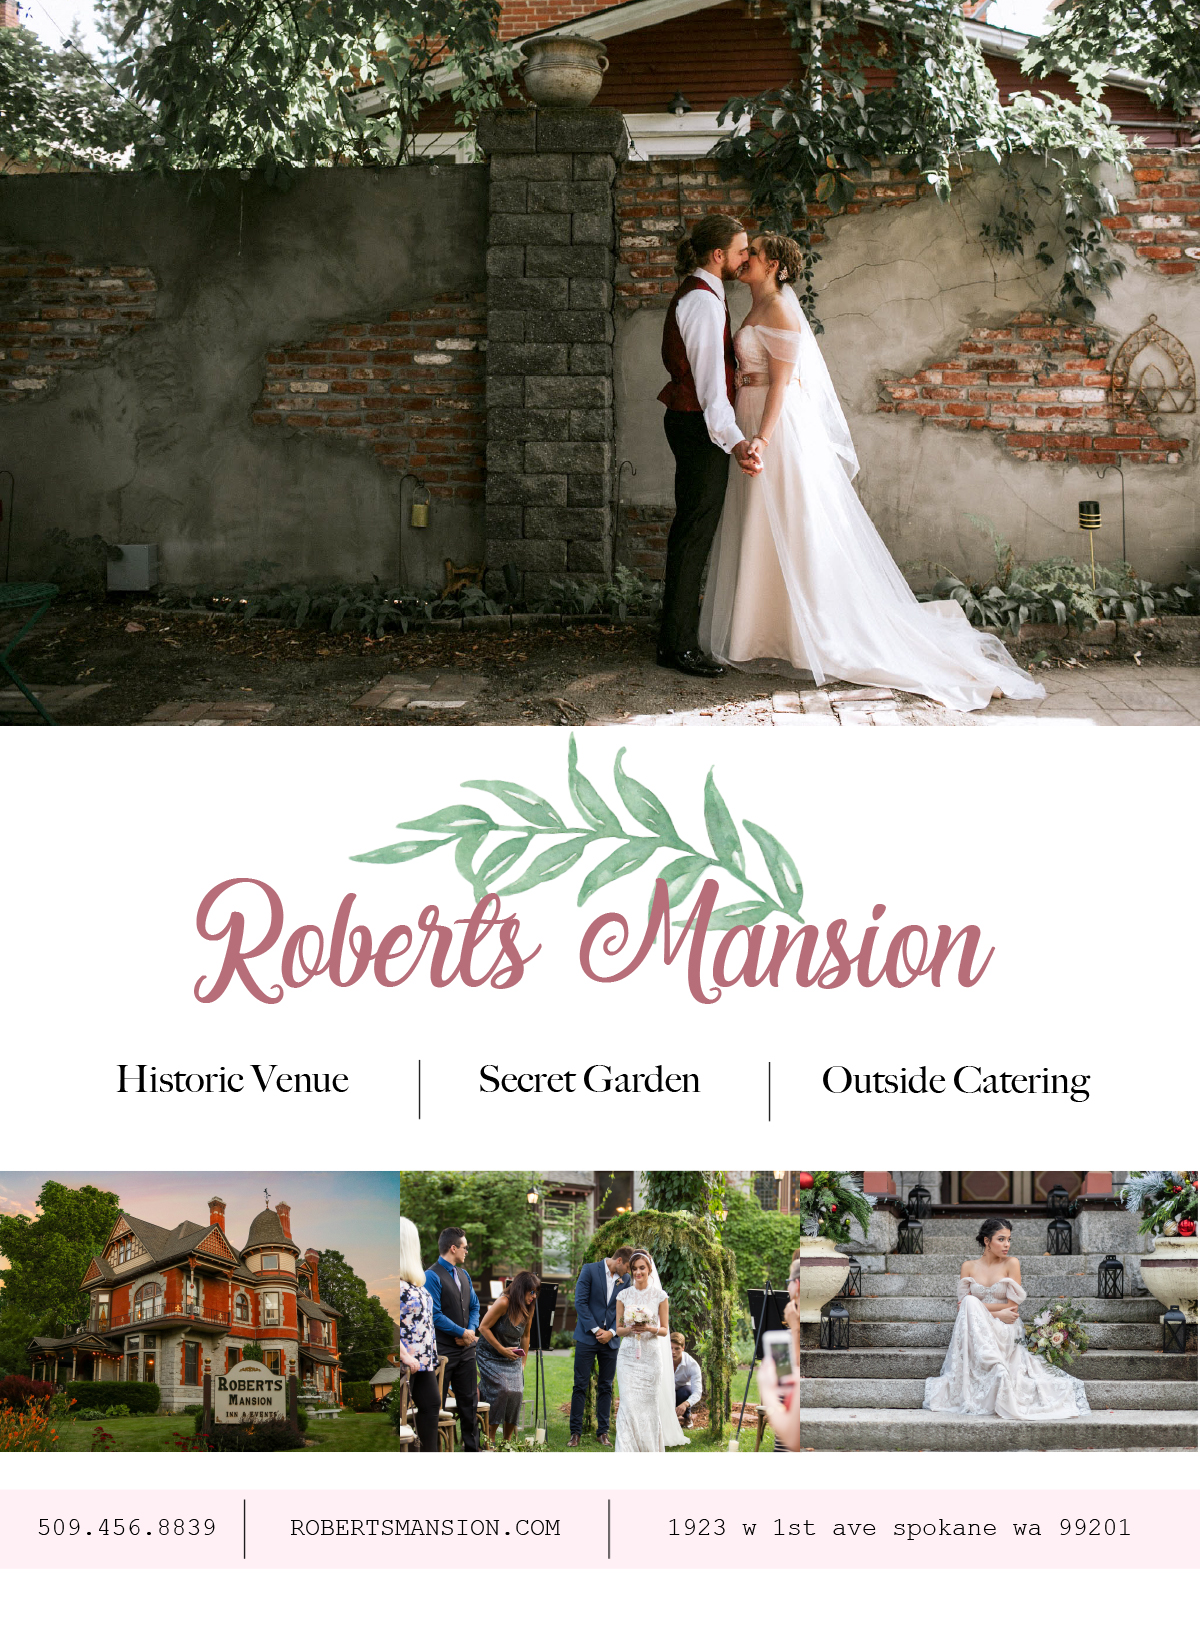 Roberts Mansion WRG Ad 2019 WEB